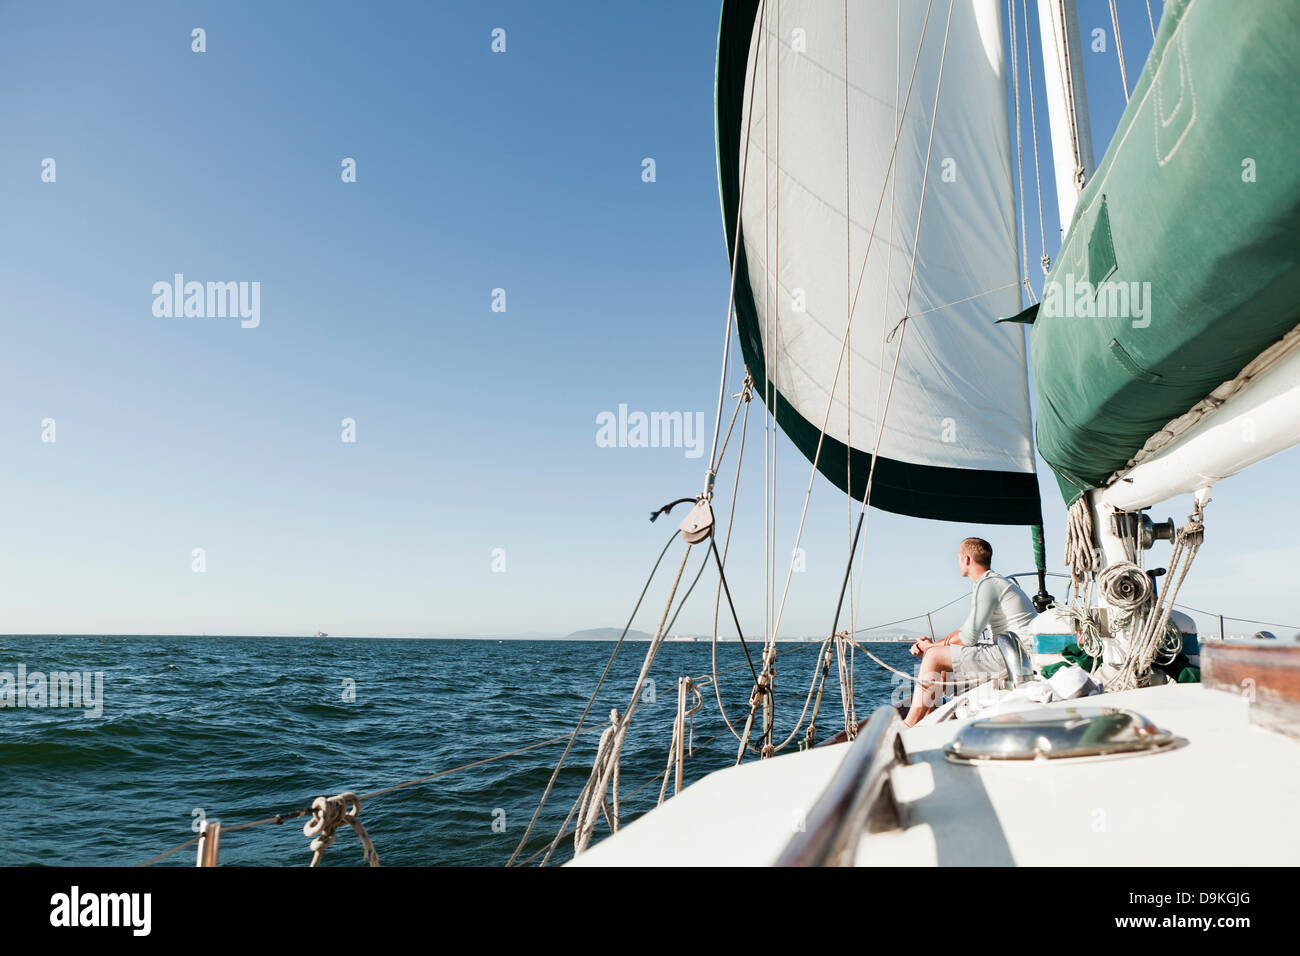 Young man on deck of yacht - Stock Image